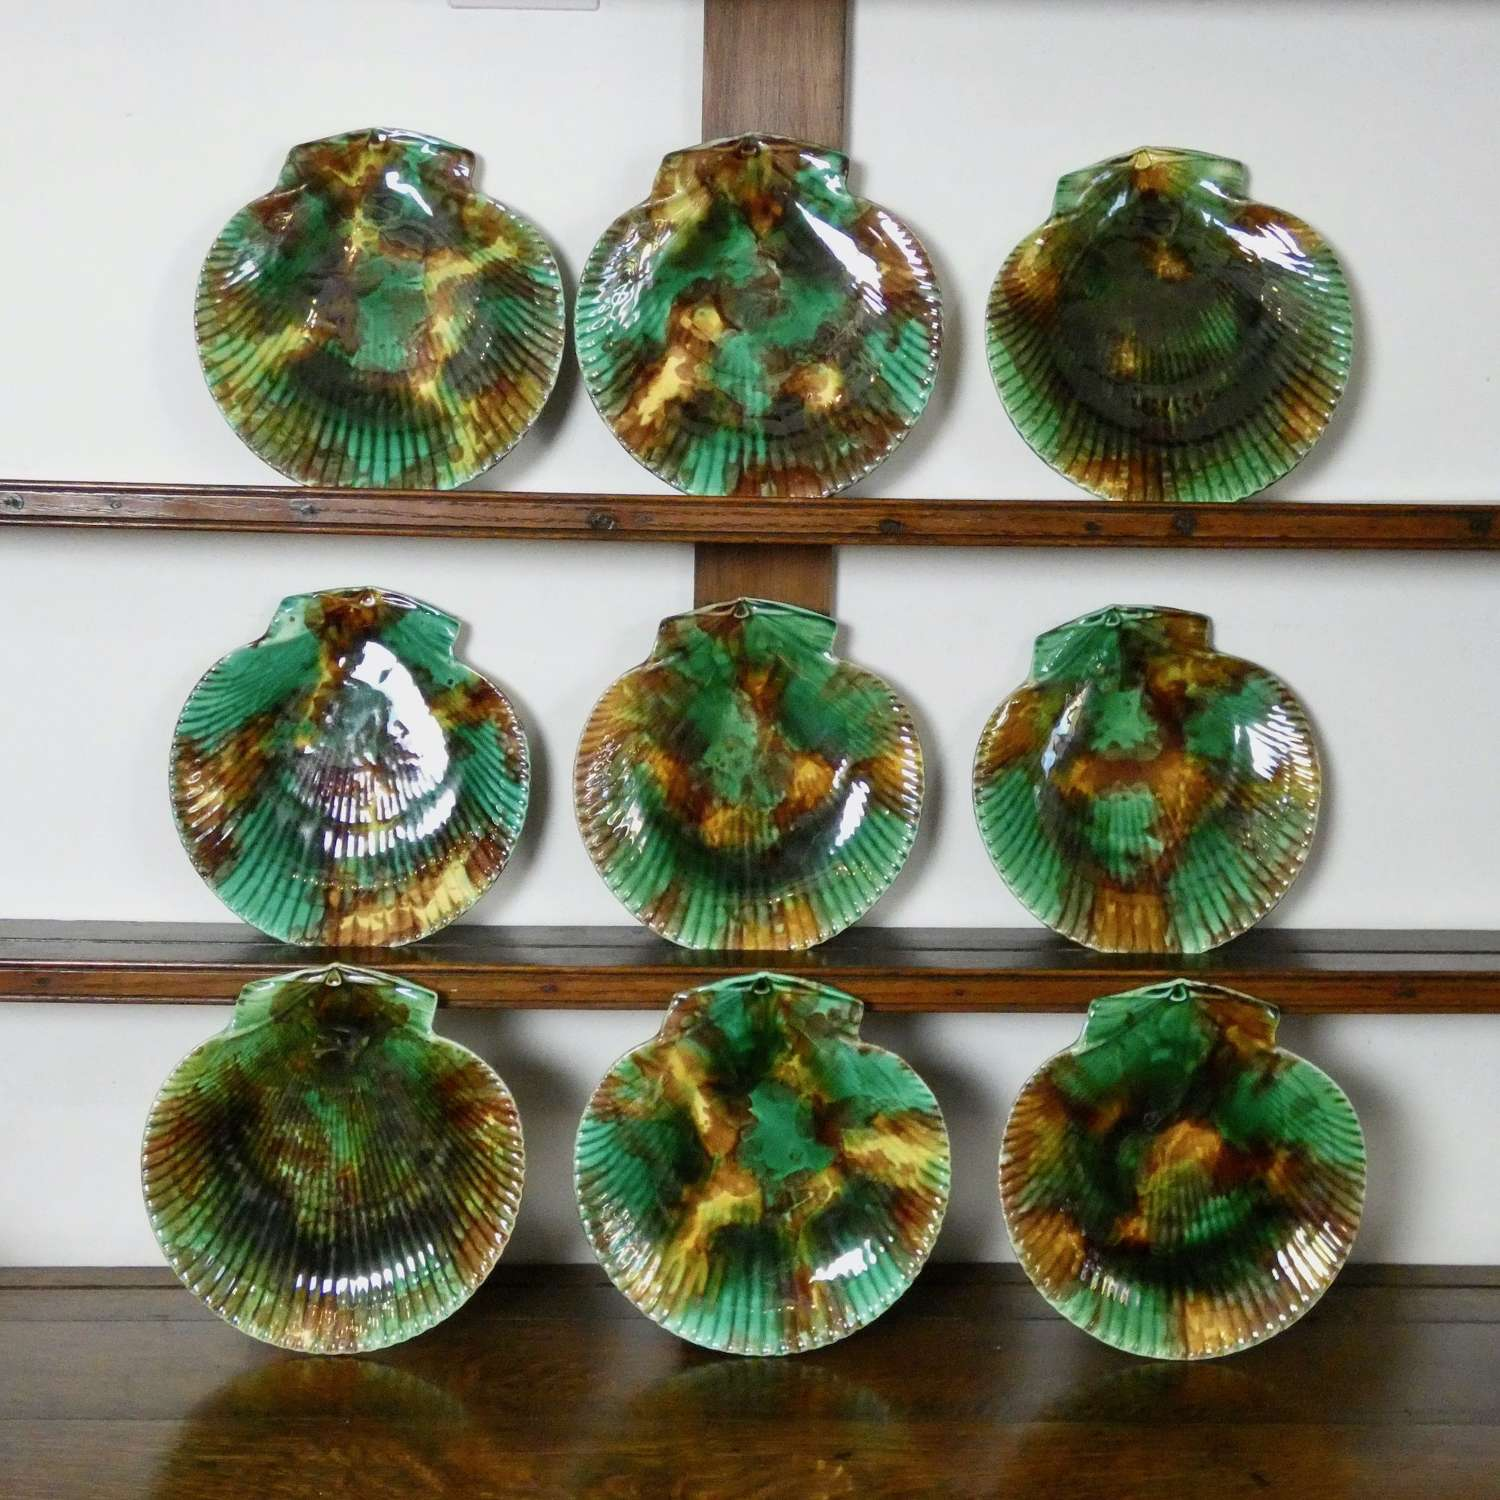 Wedgwood majolica scallop plates